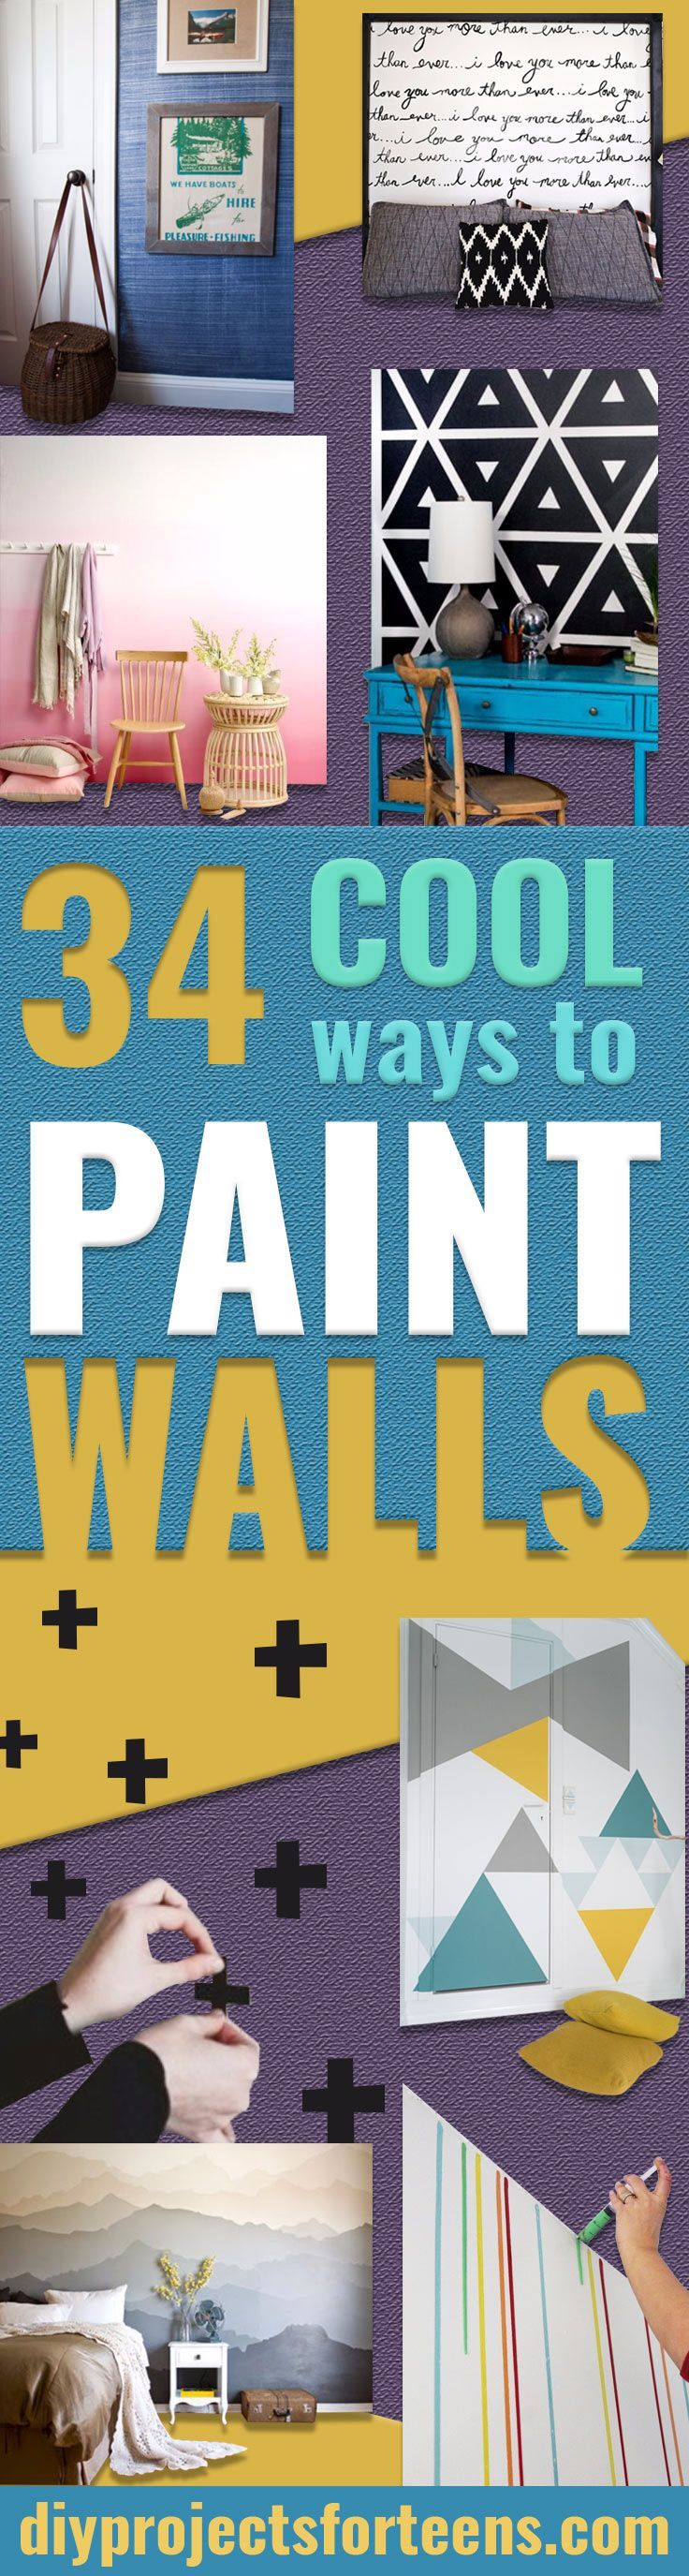 Best 25 stencils for painting ideas on pinterest wall 34 cool ways to paint walls amipublicfo Image collections